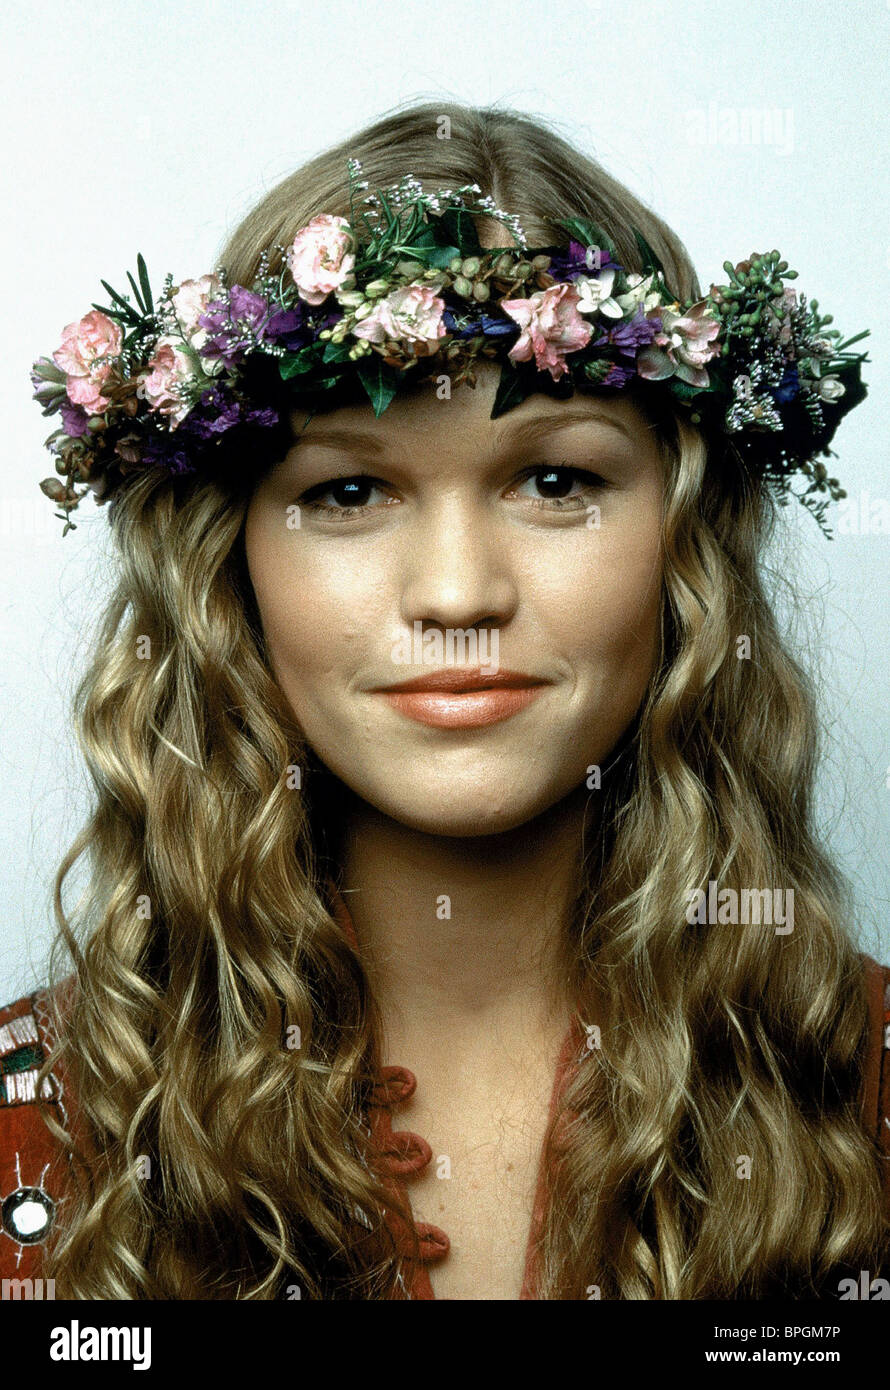 JULIA STILES THE 60'S (1999) - Stock Image